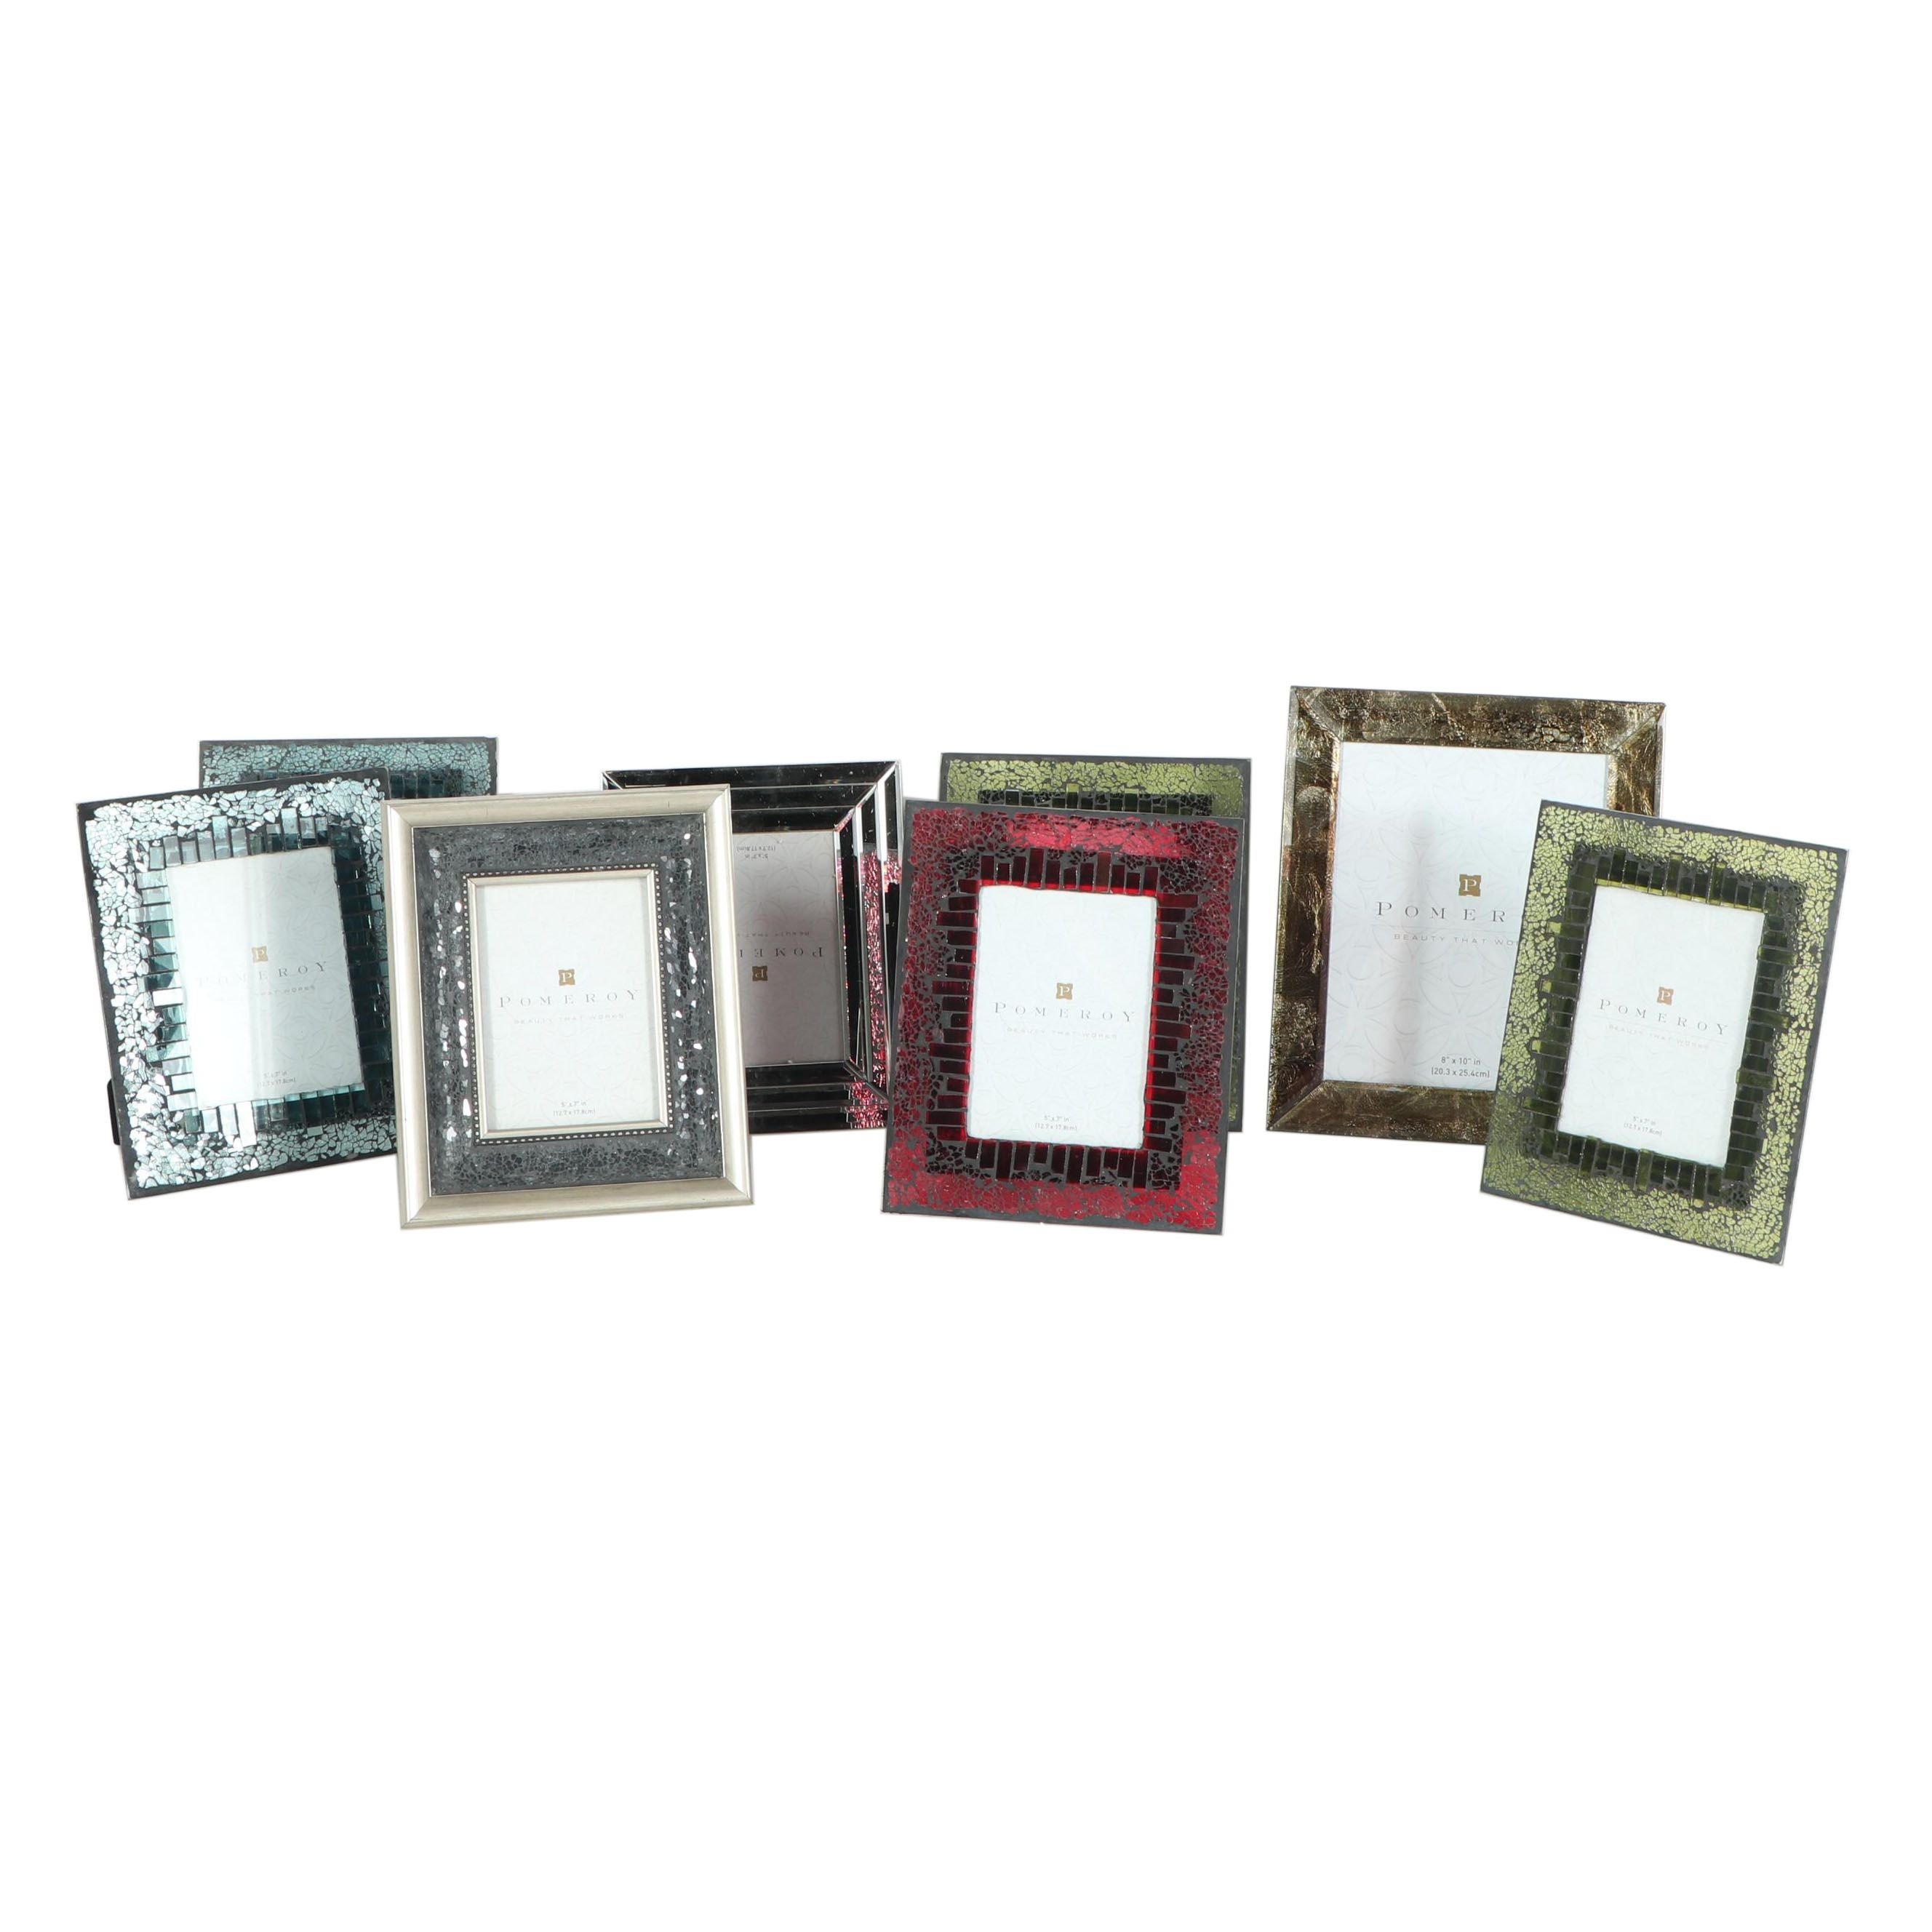 Contemporary Pomeroy 5 x 7 Picture Frames